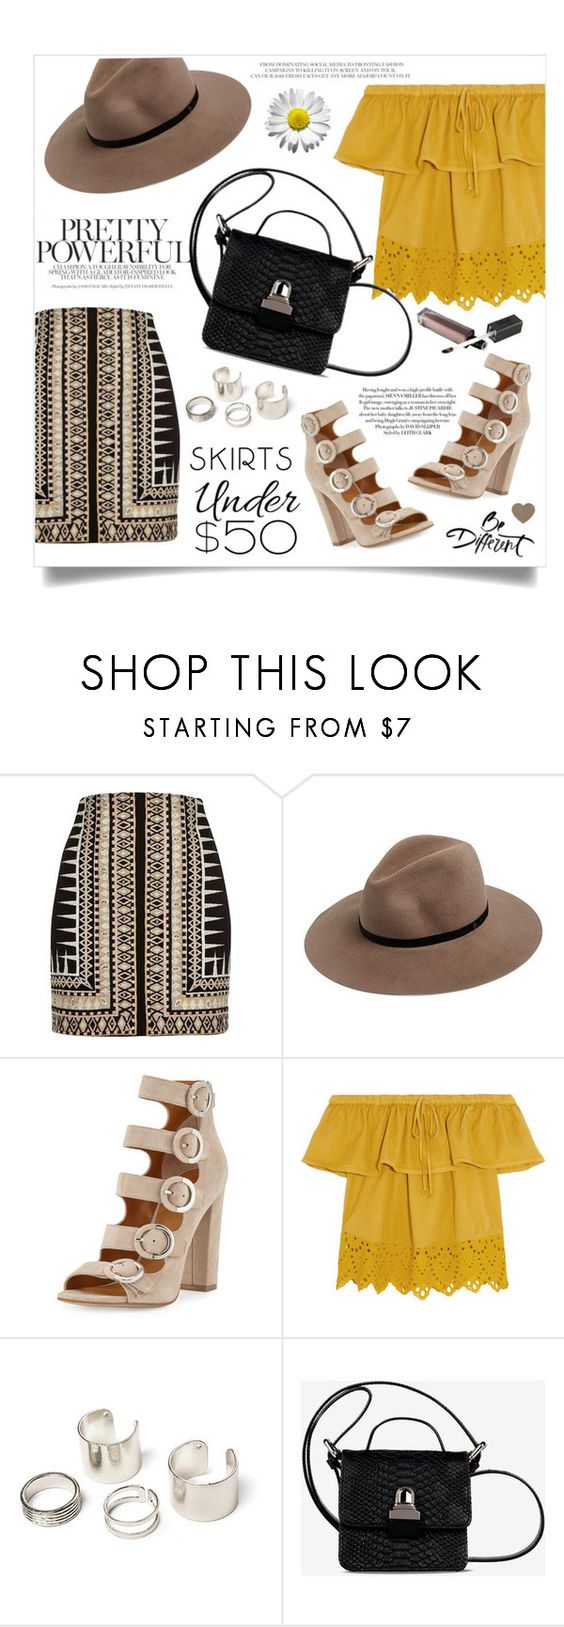 """Affordable skirt"" by anchilly23 ❤ liked on Polyvore featuring River Island, rag & bone, Kendall + Kylie, Madewell and MM6 Maison Margiela"